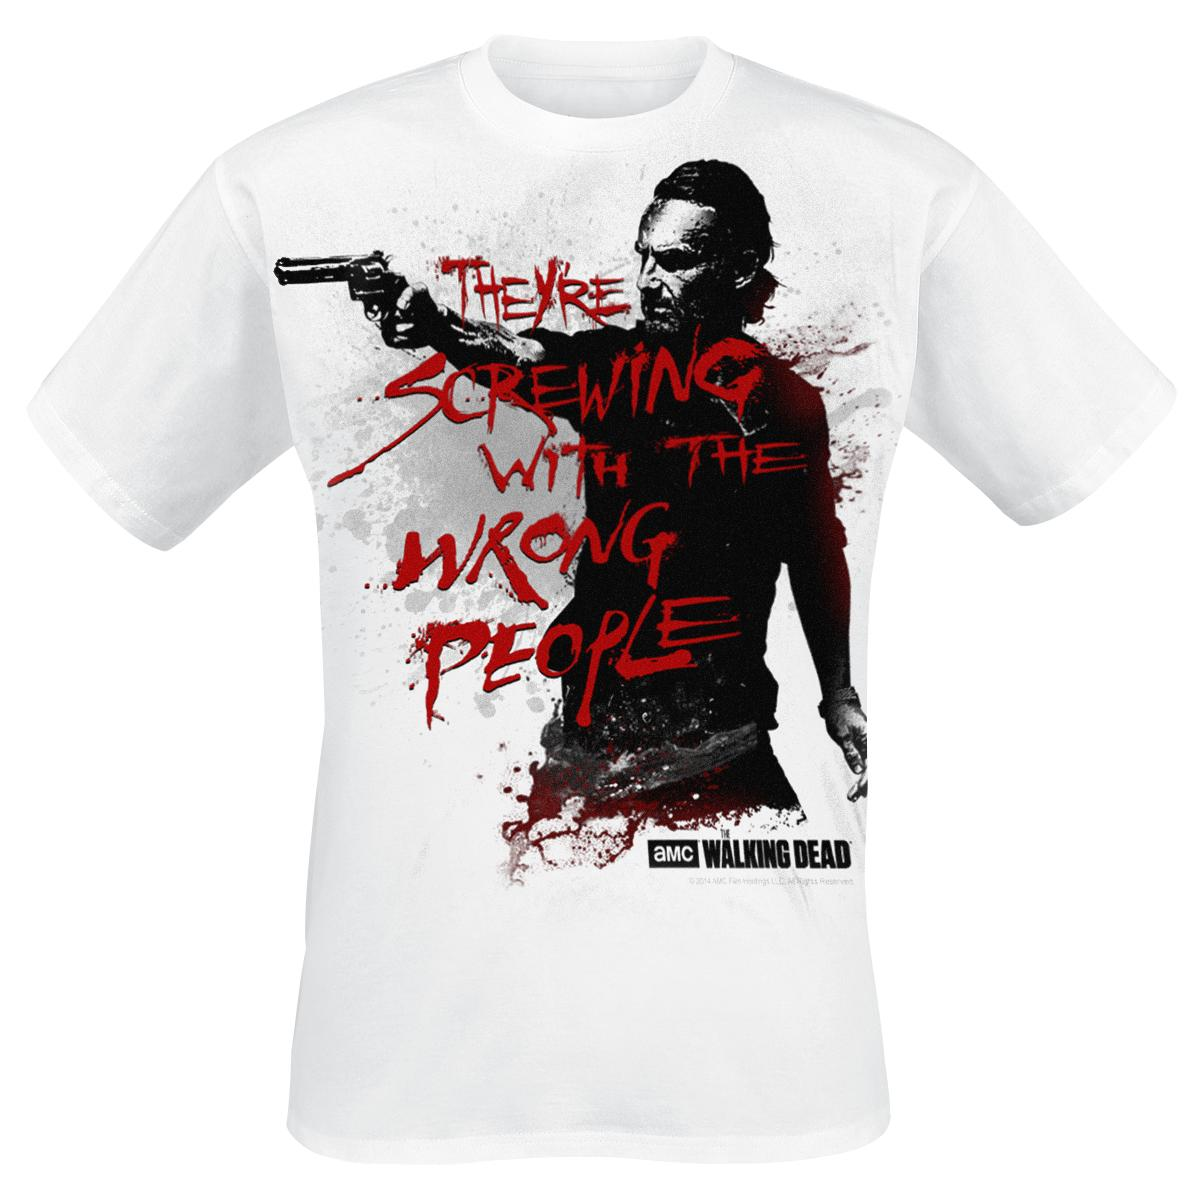 rick-grimes-wrong-people-t-shirt-design